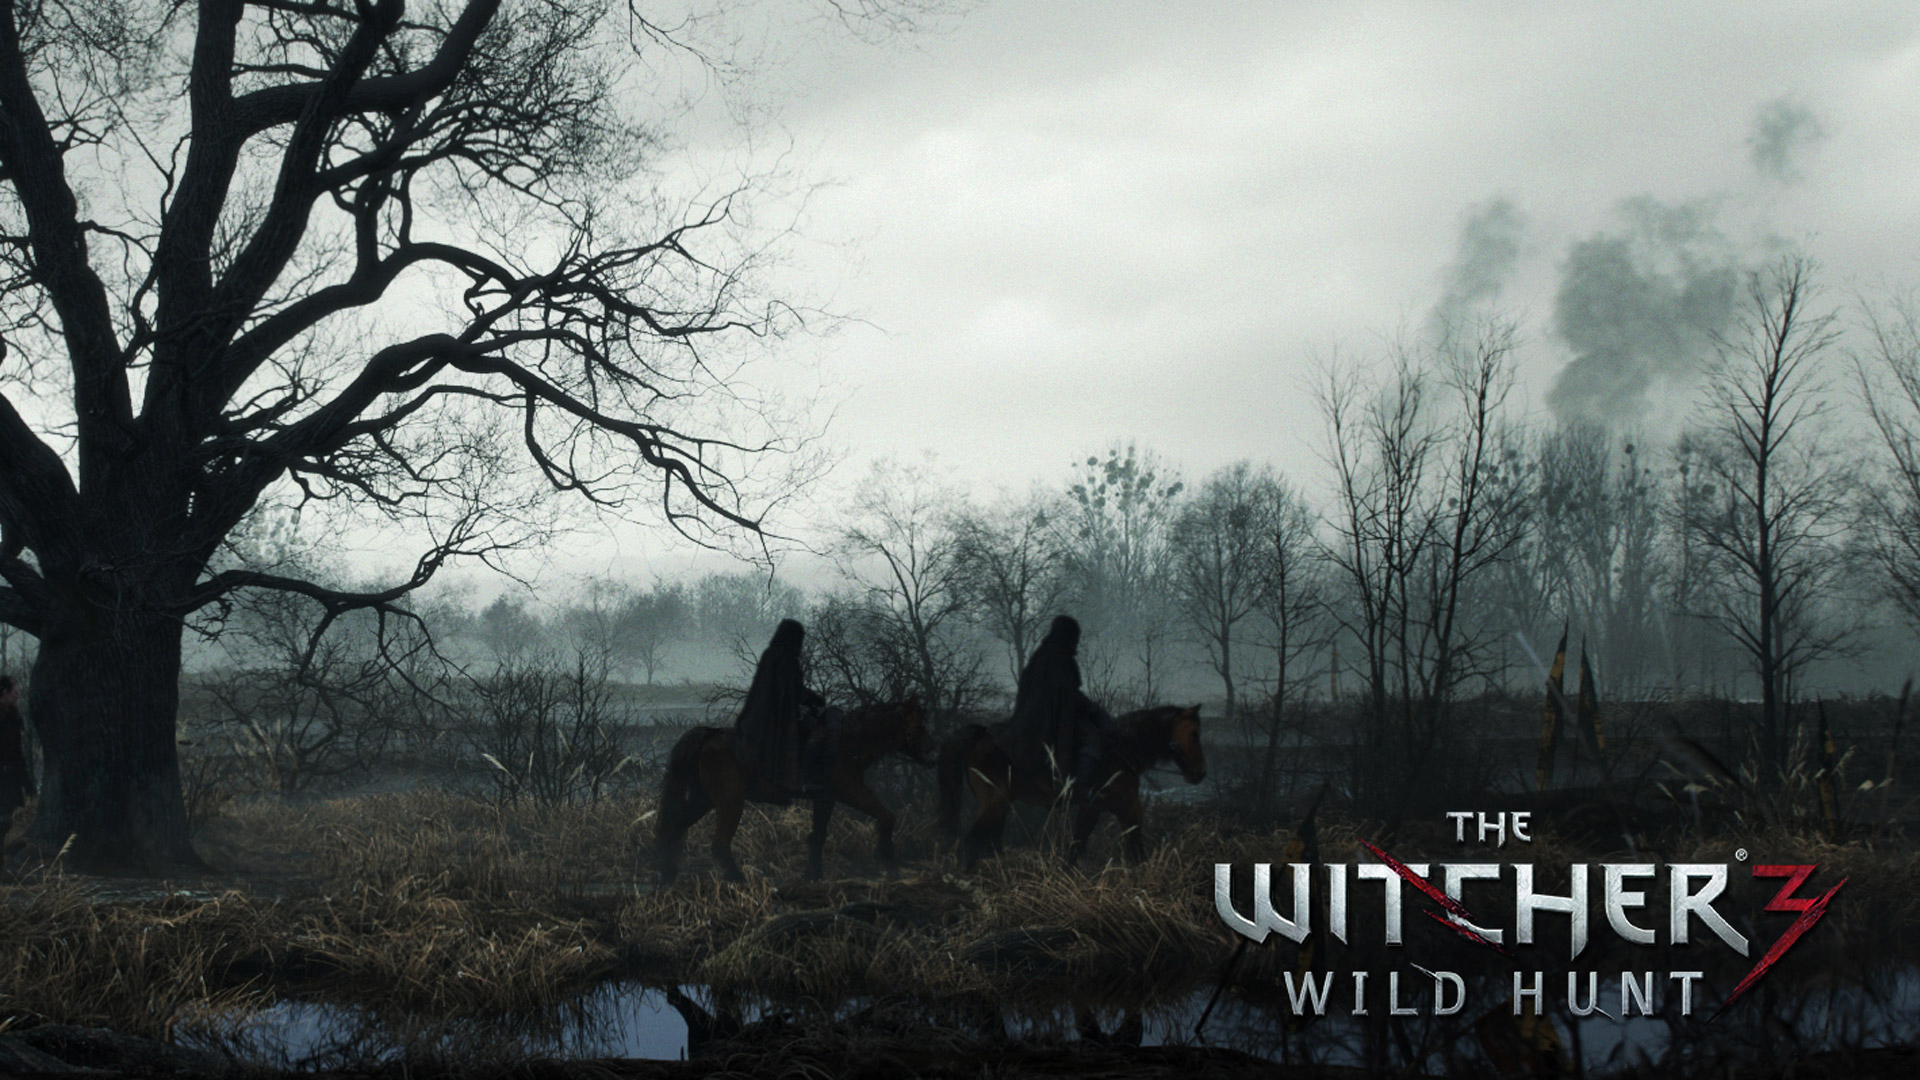 The Witcher 3 Wallpaper 1920x1080: The Witcher 3 1080p Wallpaper